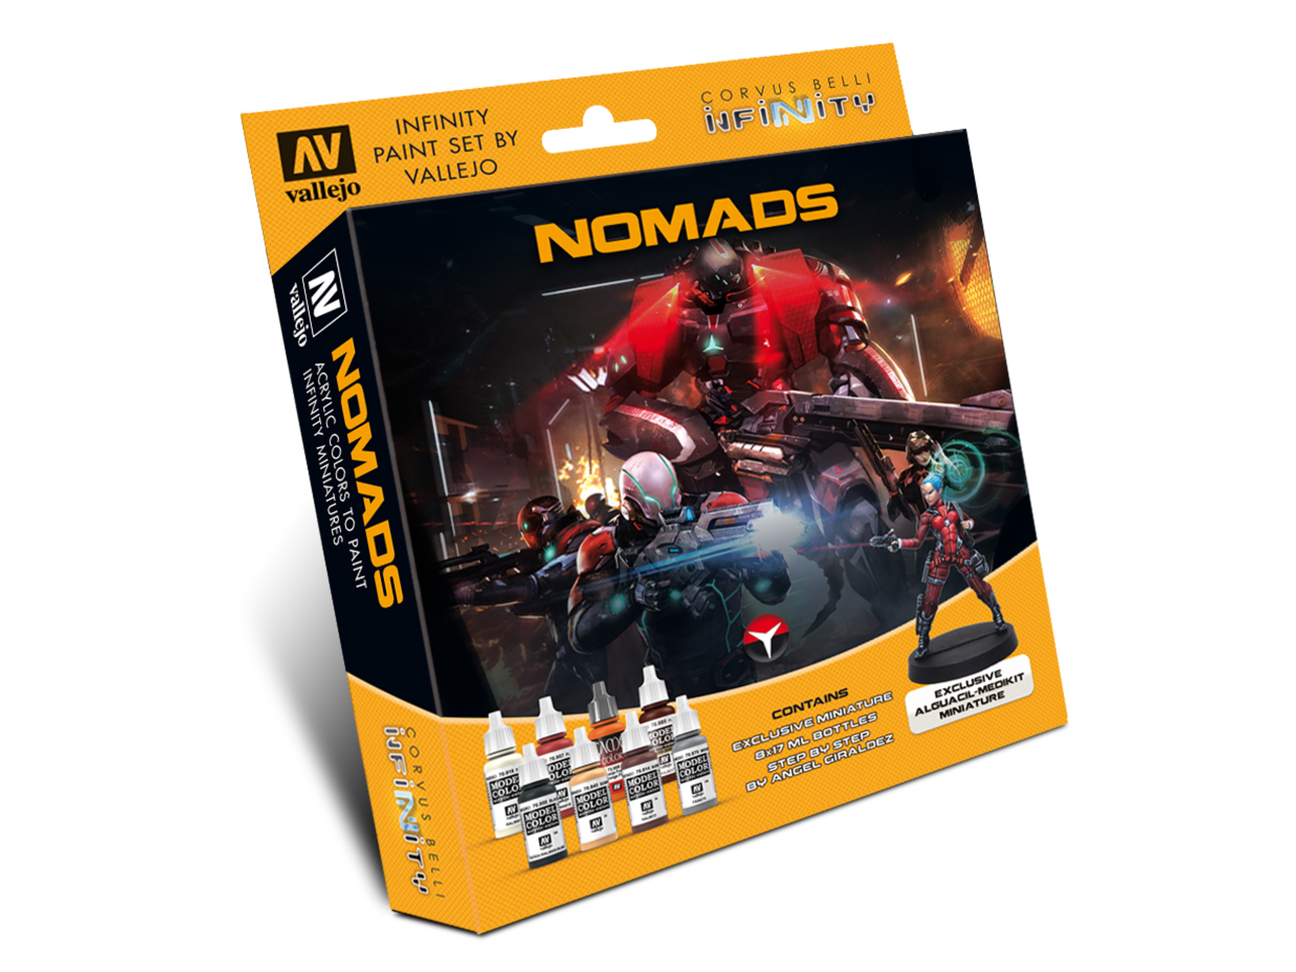 Infinity Nomads Model Color Set - includes Exclusive Miniature